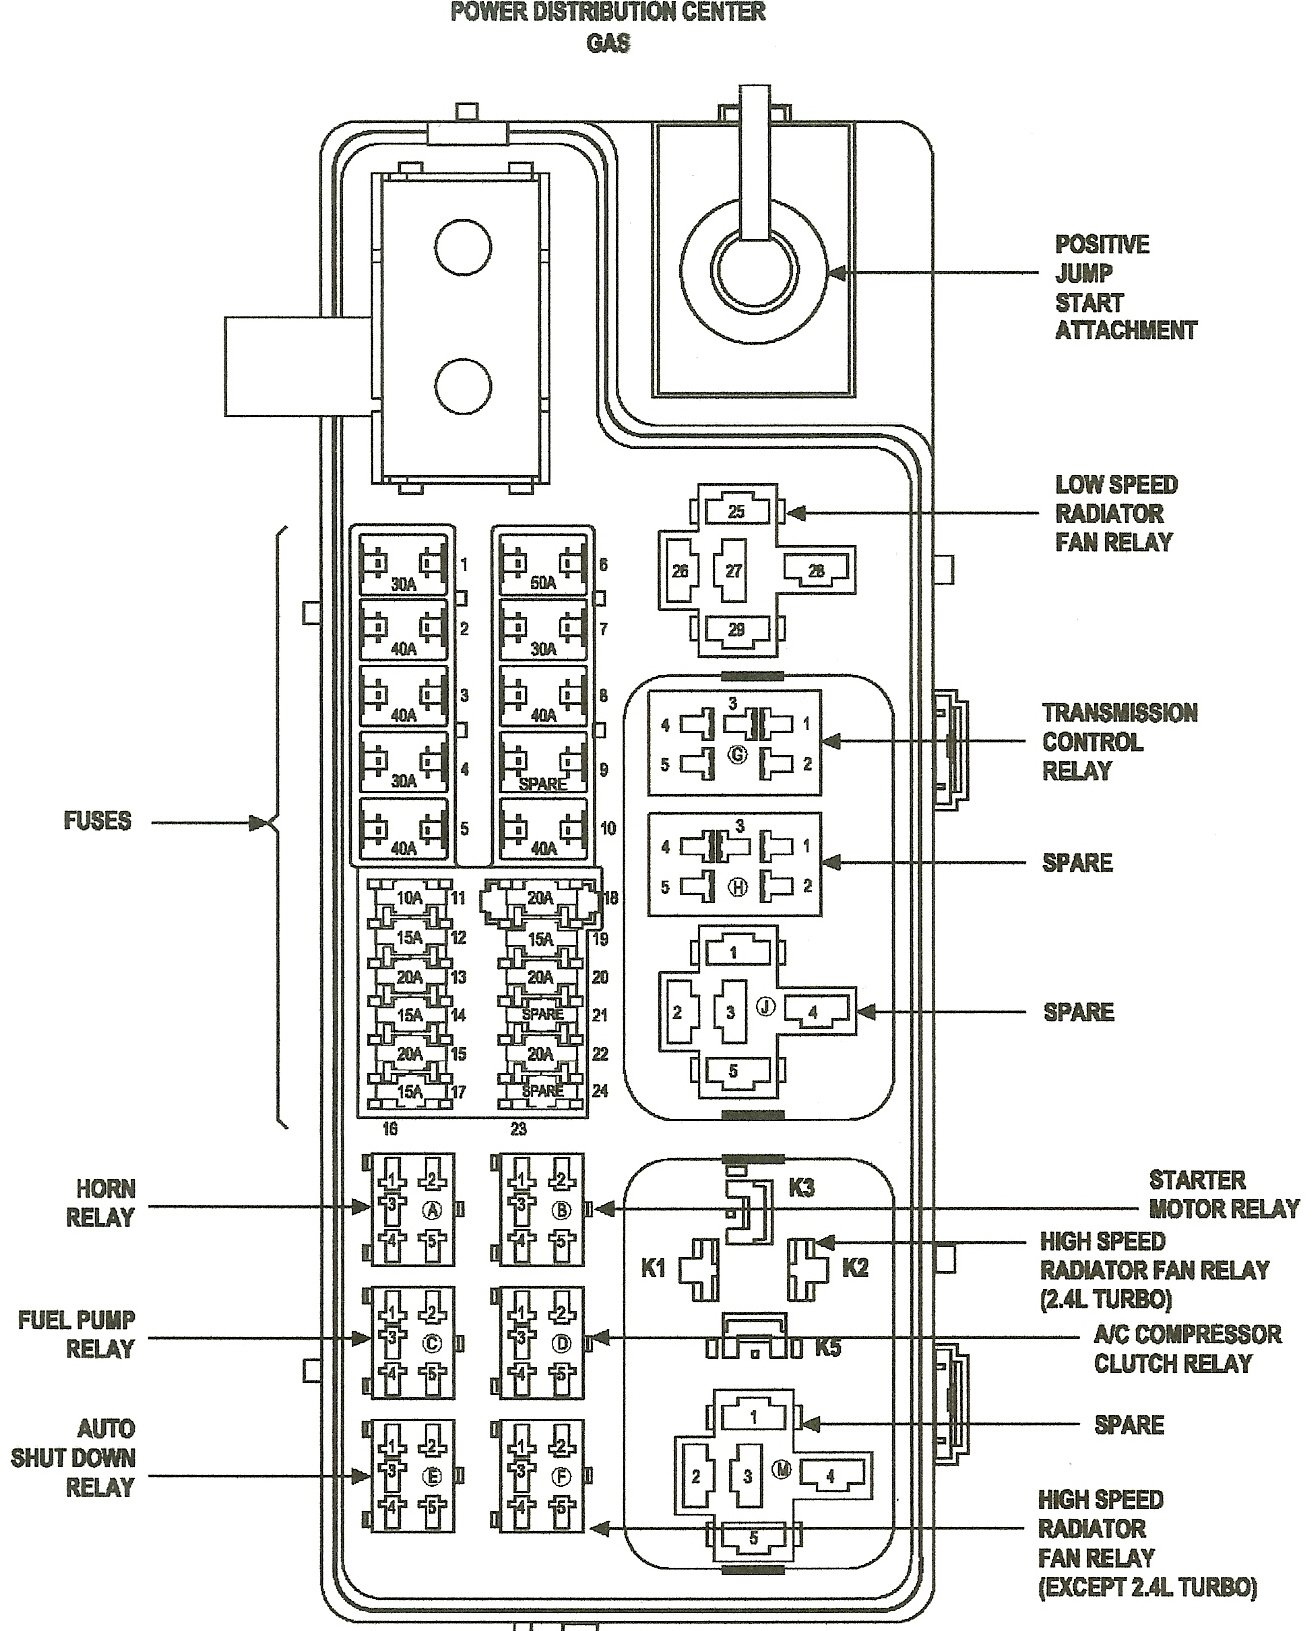 300c Fuse Box Manual 2006 Pt Cruiser Diagram 28 Wiring Images 2011 12 13 033151 Power Dis Center Which Pin On The Computer Is For Camshaft Position